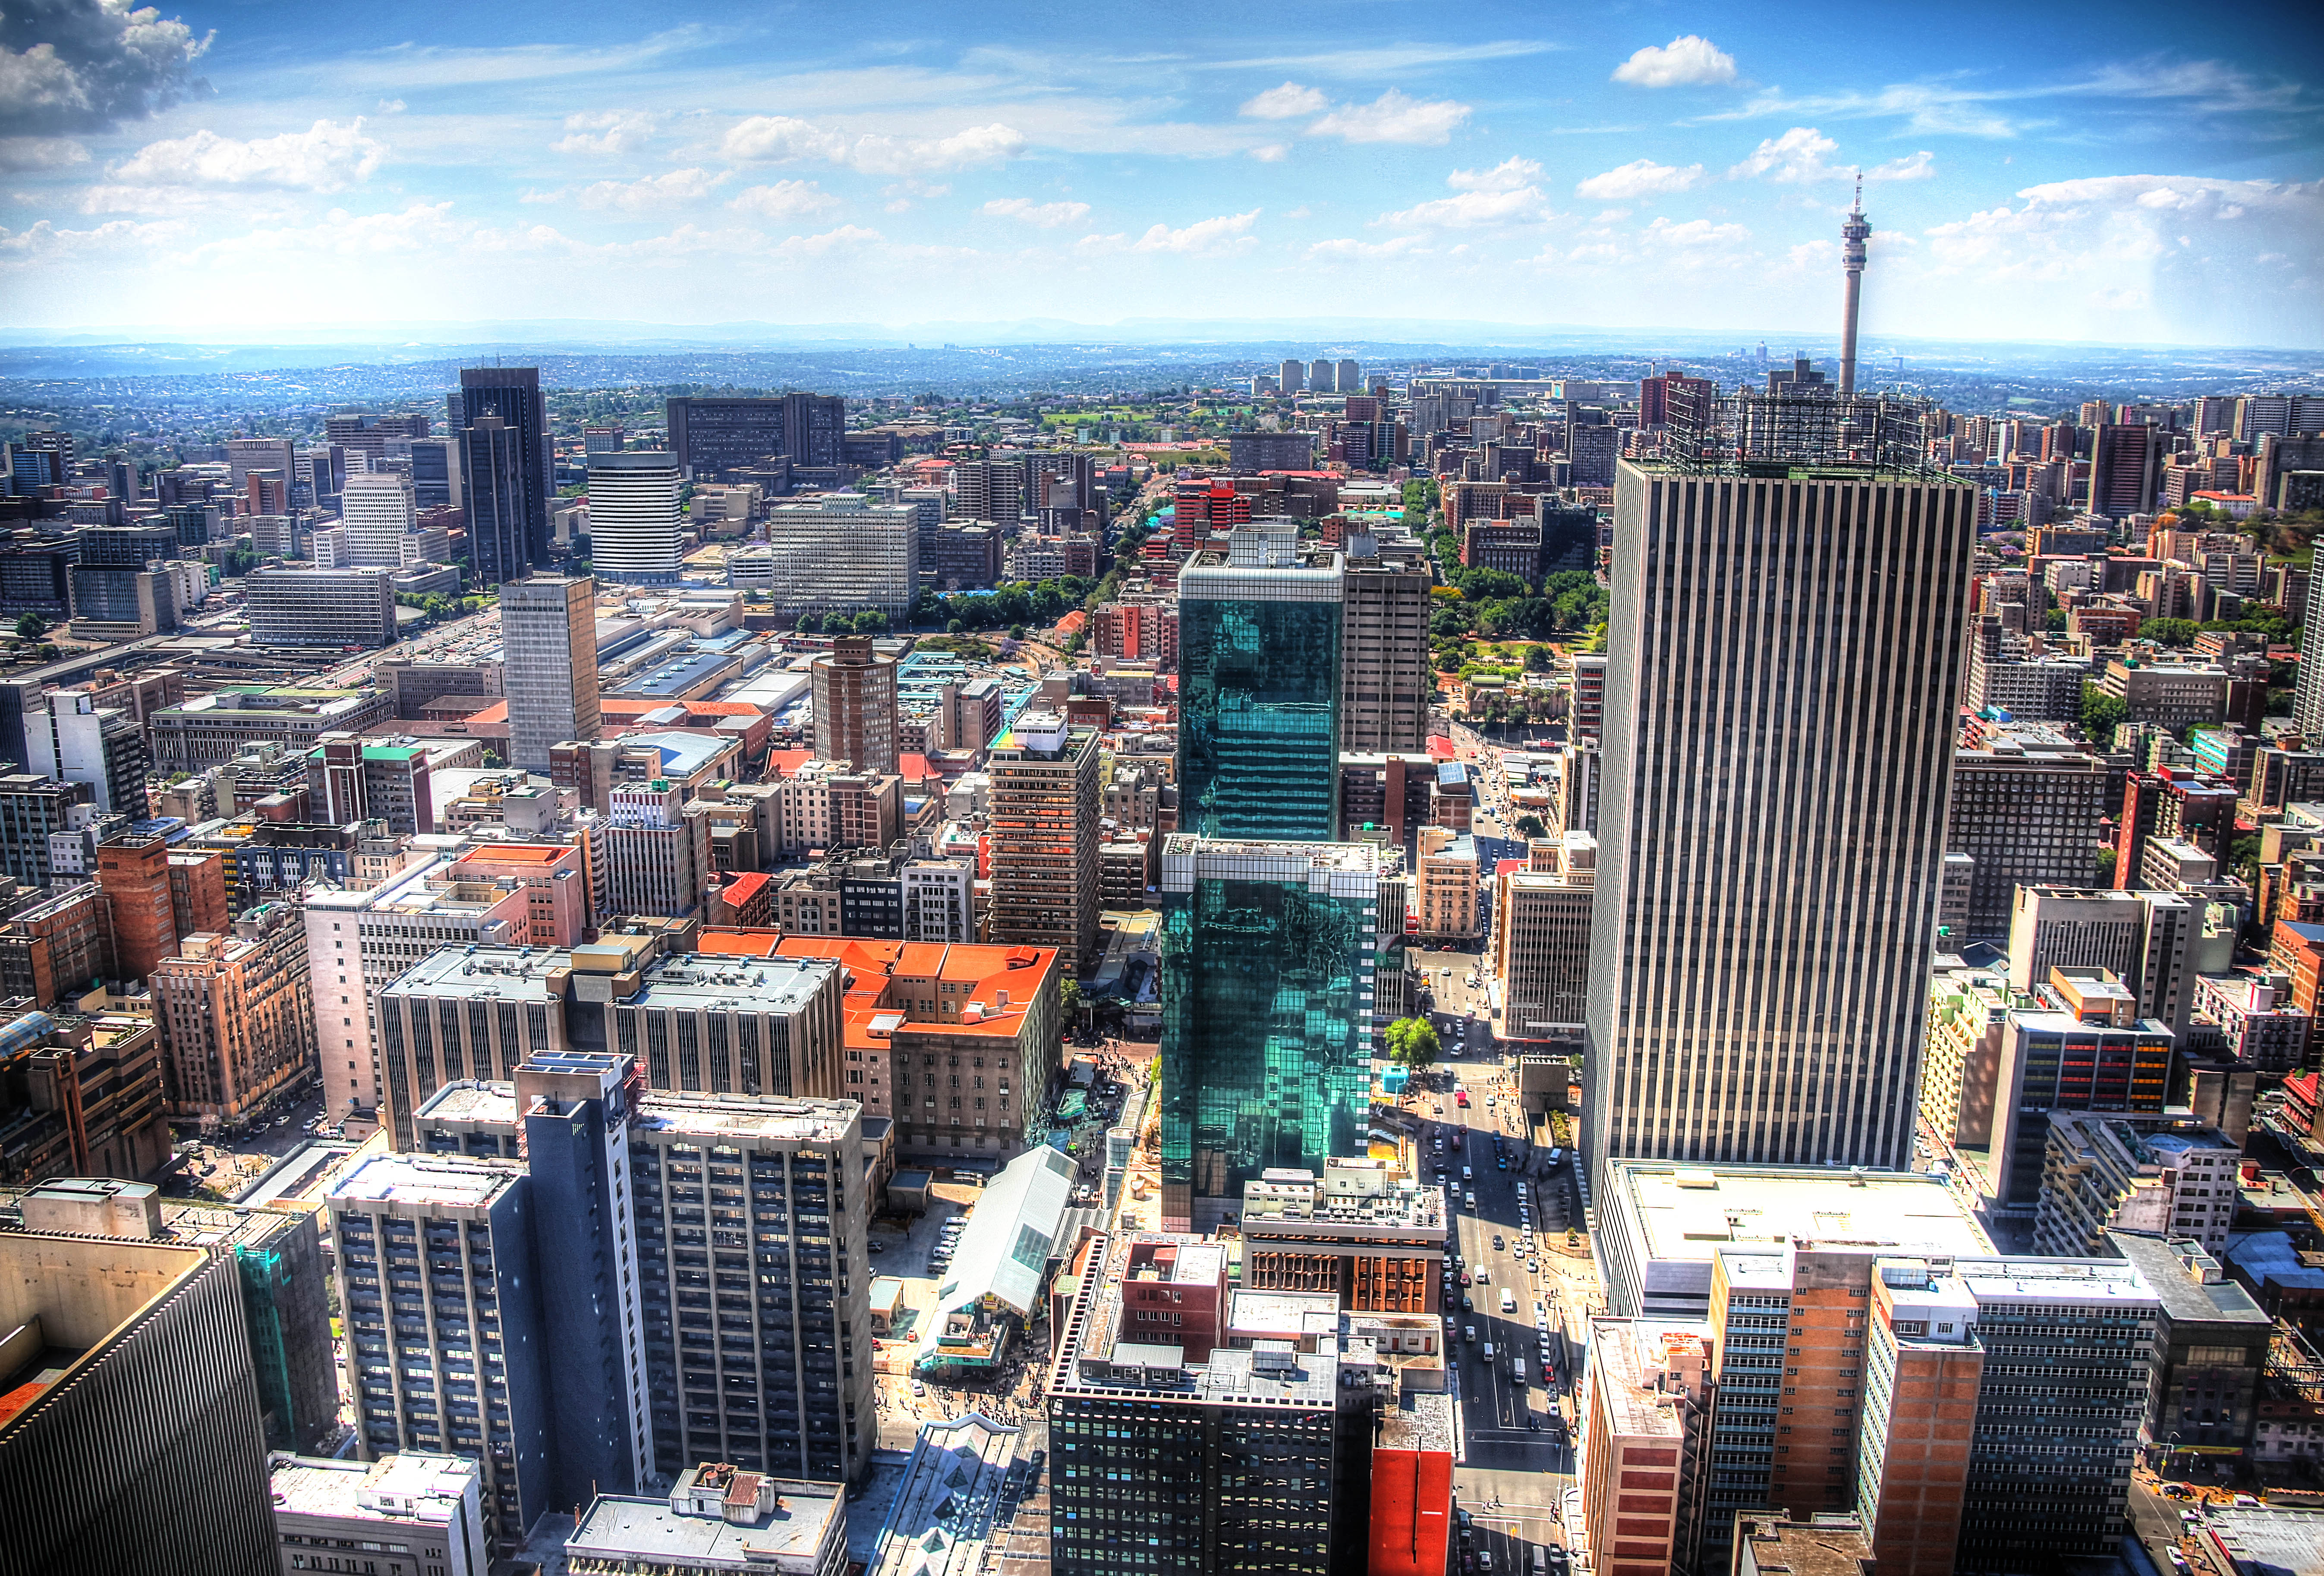 Johannesburg skyline theyre calling to me johannesburg skyline thecheapjerseys Choice Image